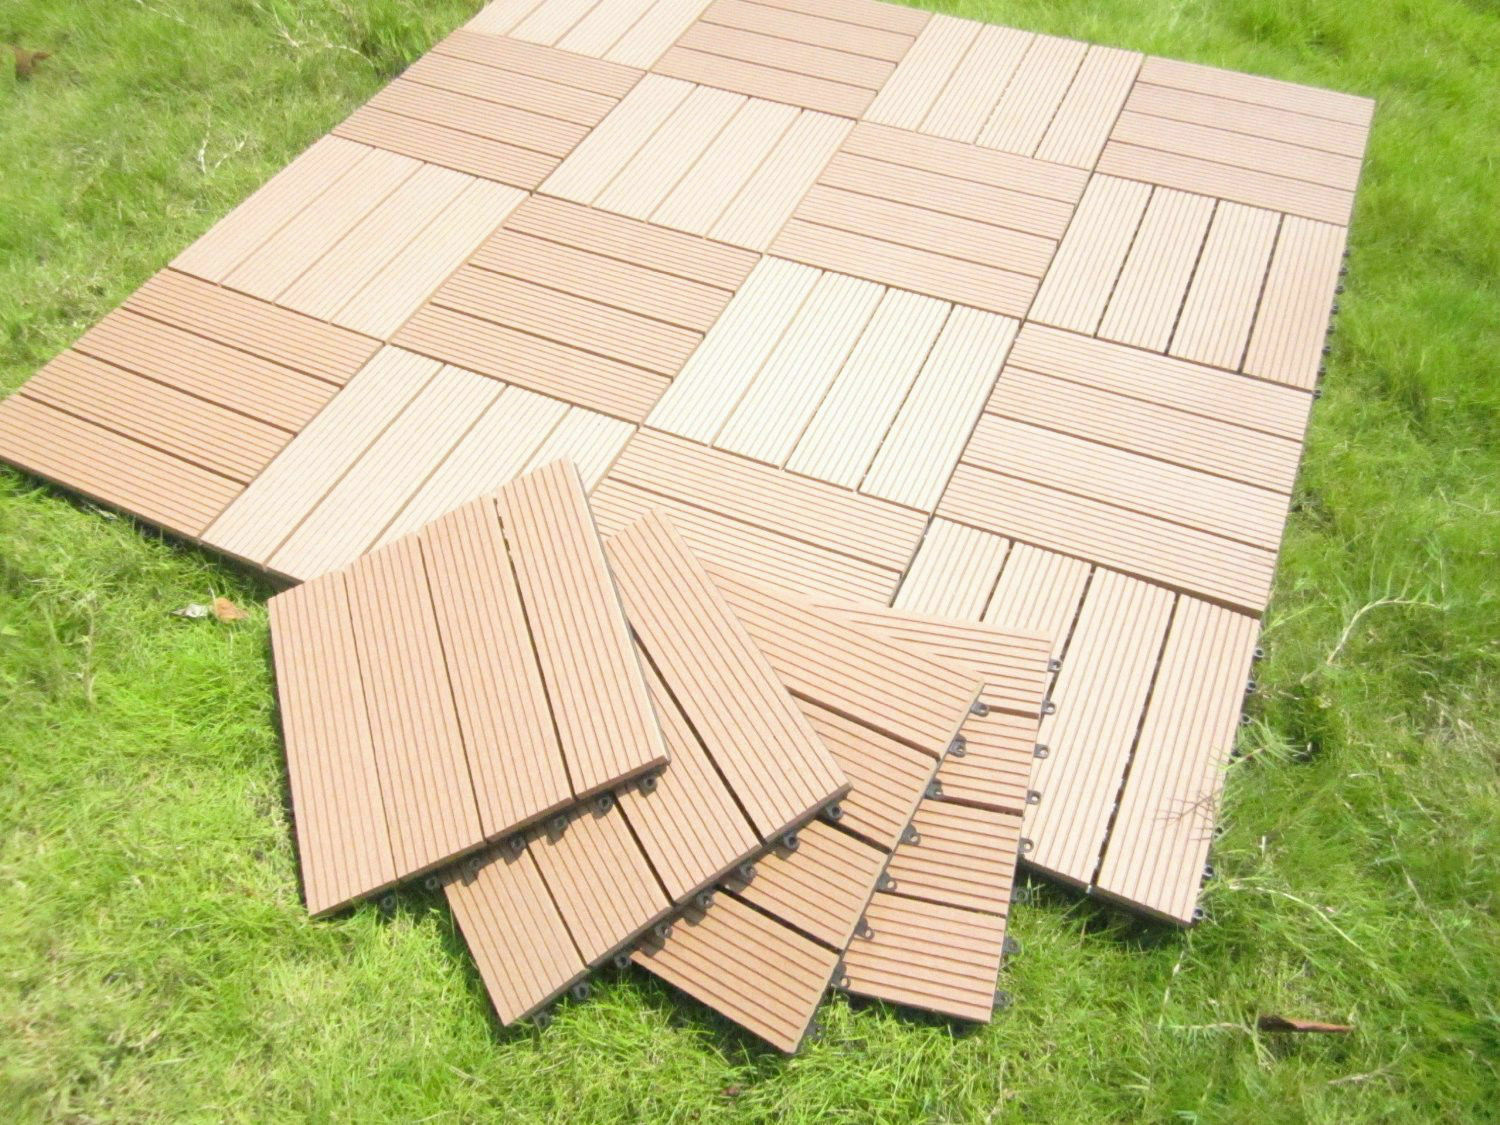 How to install interlocking deck tiles ebay for Garden decking squares